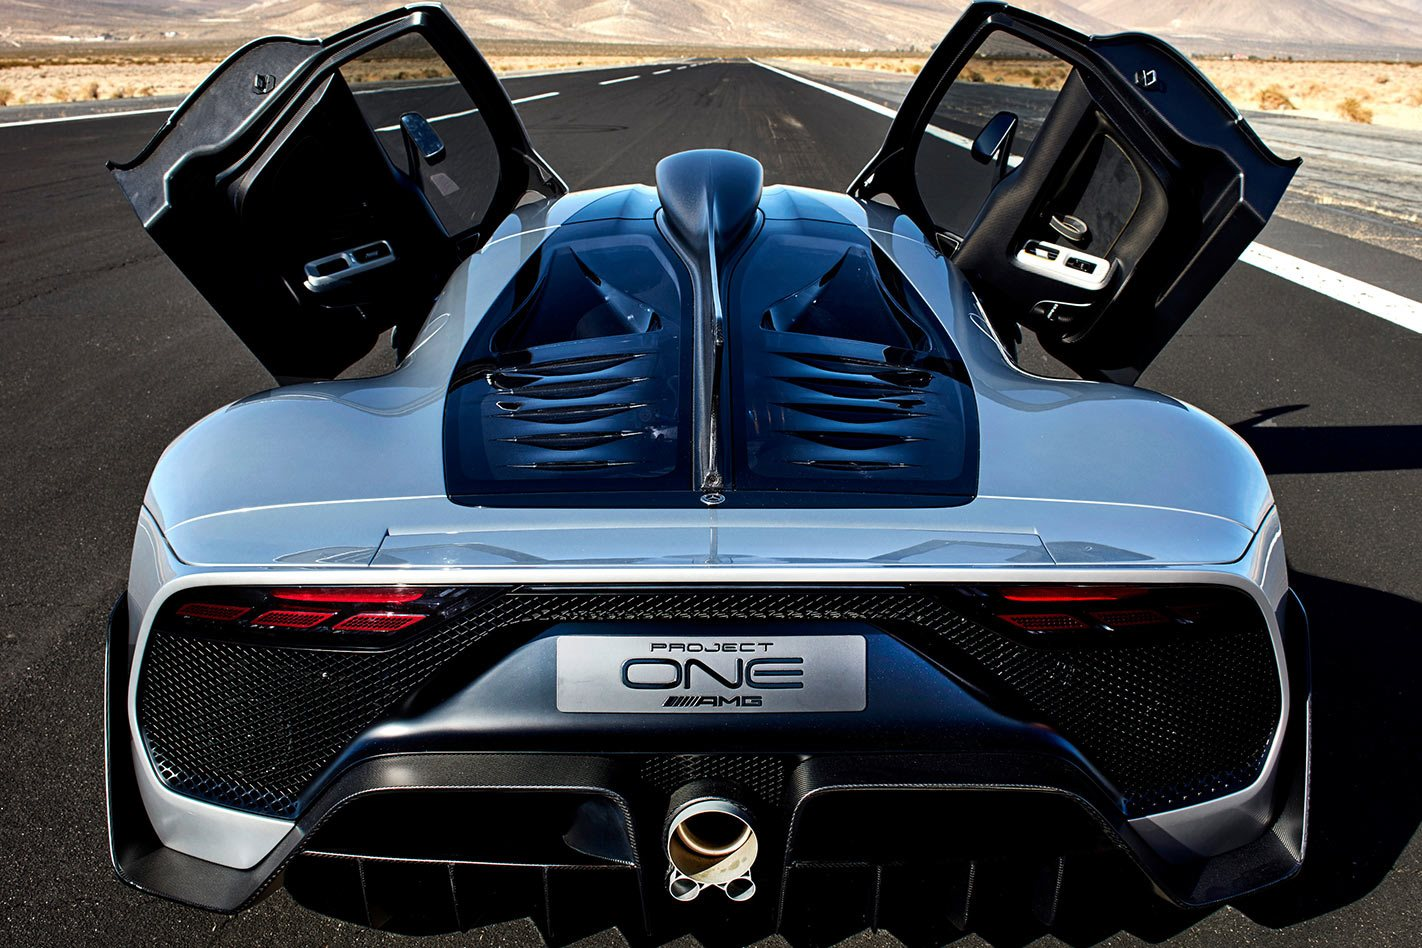 Mercedes-Benz AMG One project rear